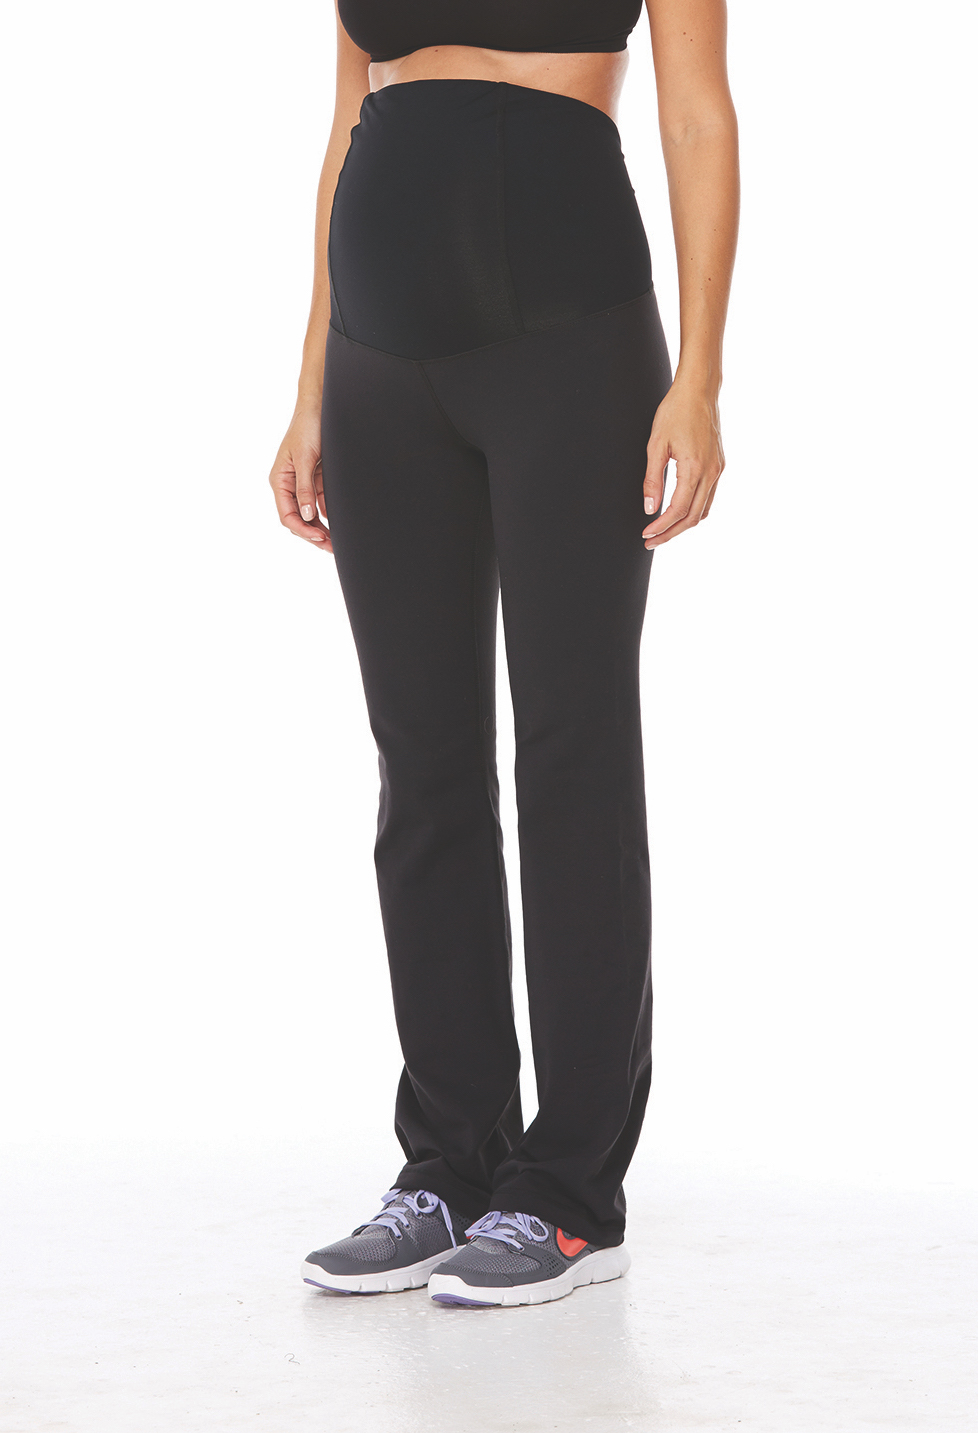 Active Long Pant ft. Crossover Panel® - • Crossover Panel® provides gentle support to the lower back as your belly grows.•Contoured panel accommodates a growing belly.•Four-way stretch fabric allows full range of motion.•Moisture-wicking and antimicrobial.•Flatlock stitching minimizes chafe.•Wear up or folded down for versatile comfort before and after baby.